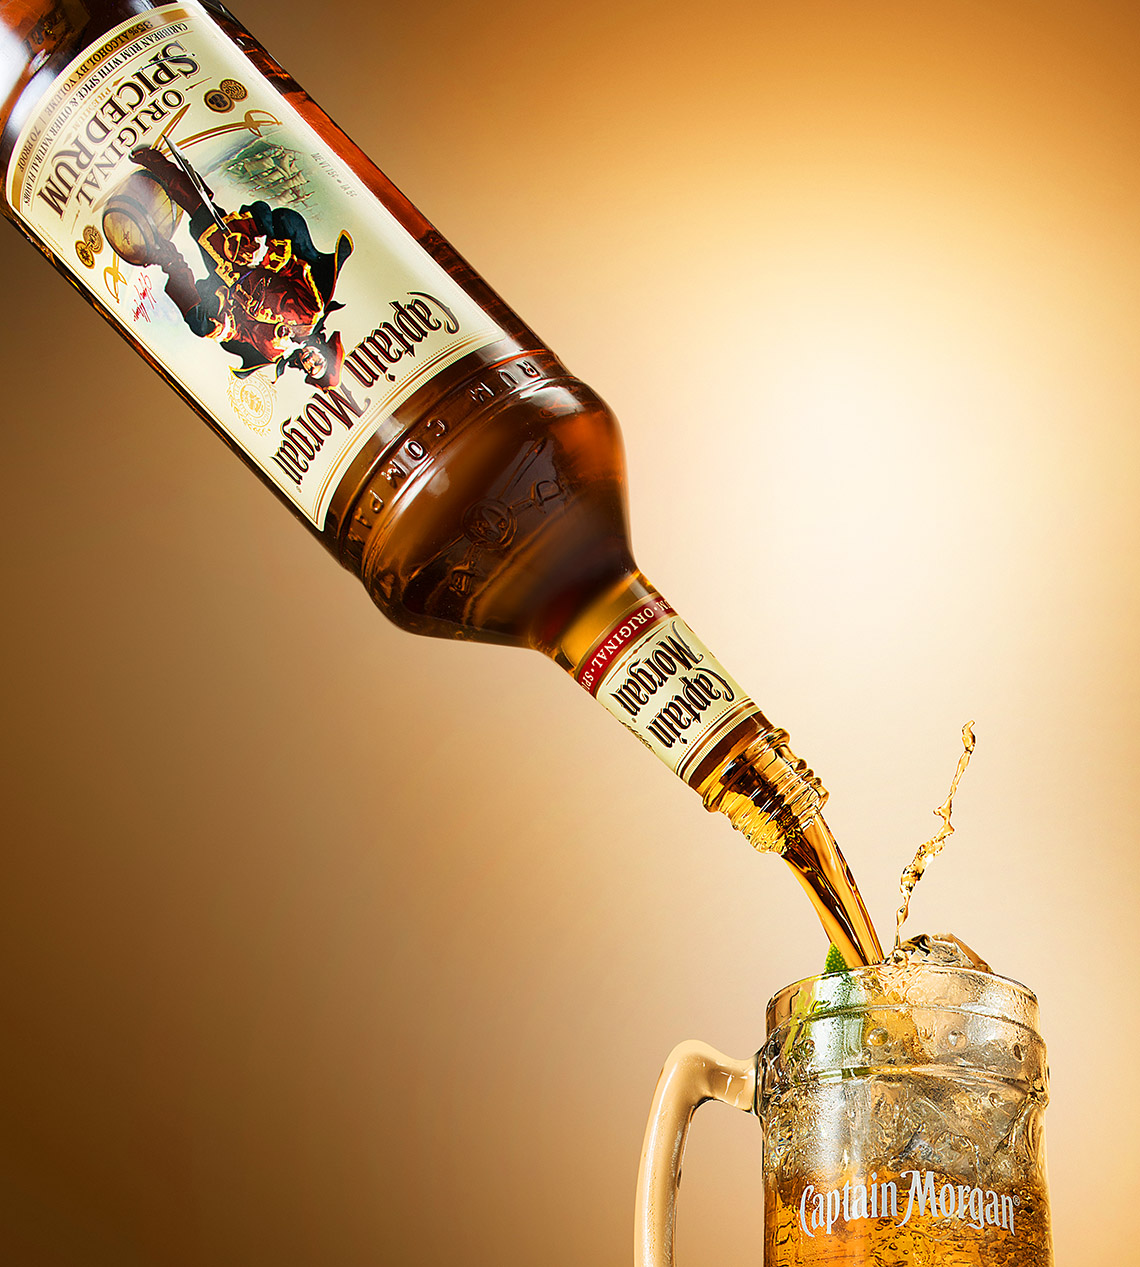 New-york-liqued-photographer-Captain-morgan-pour